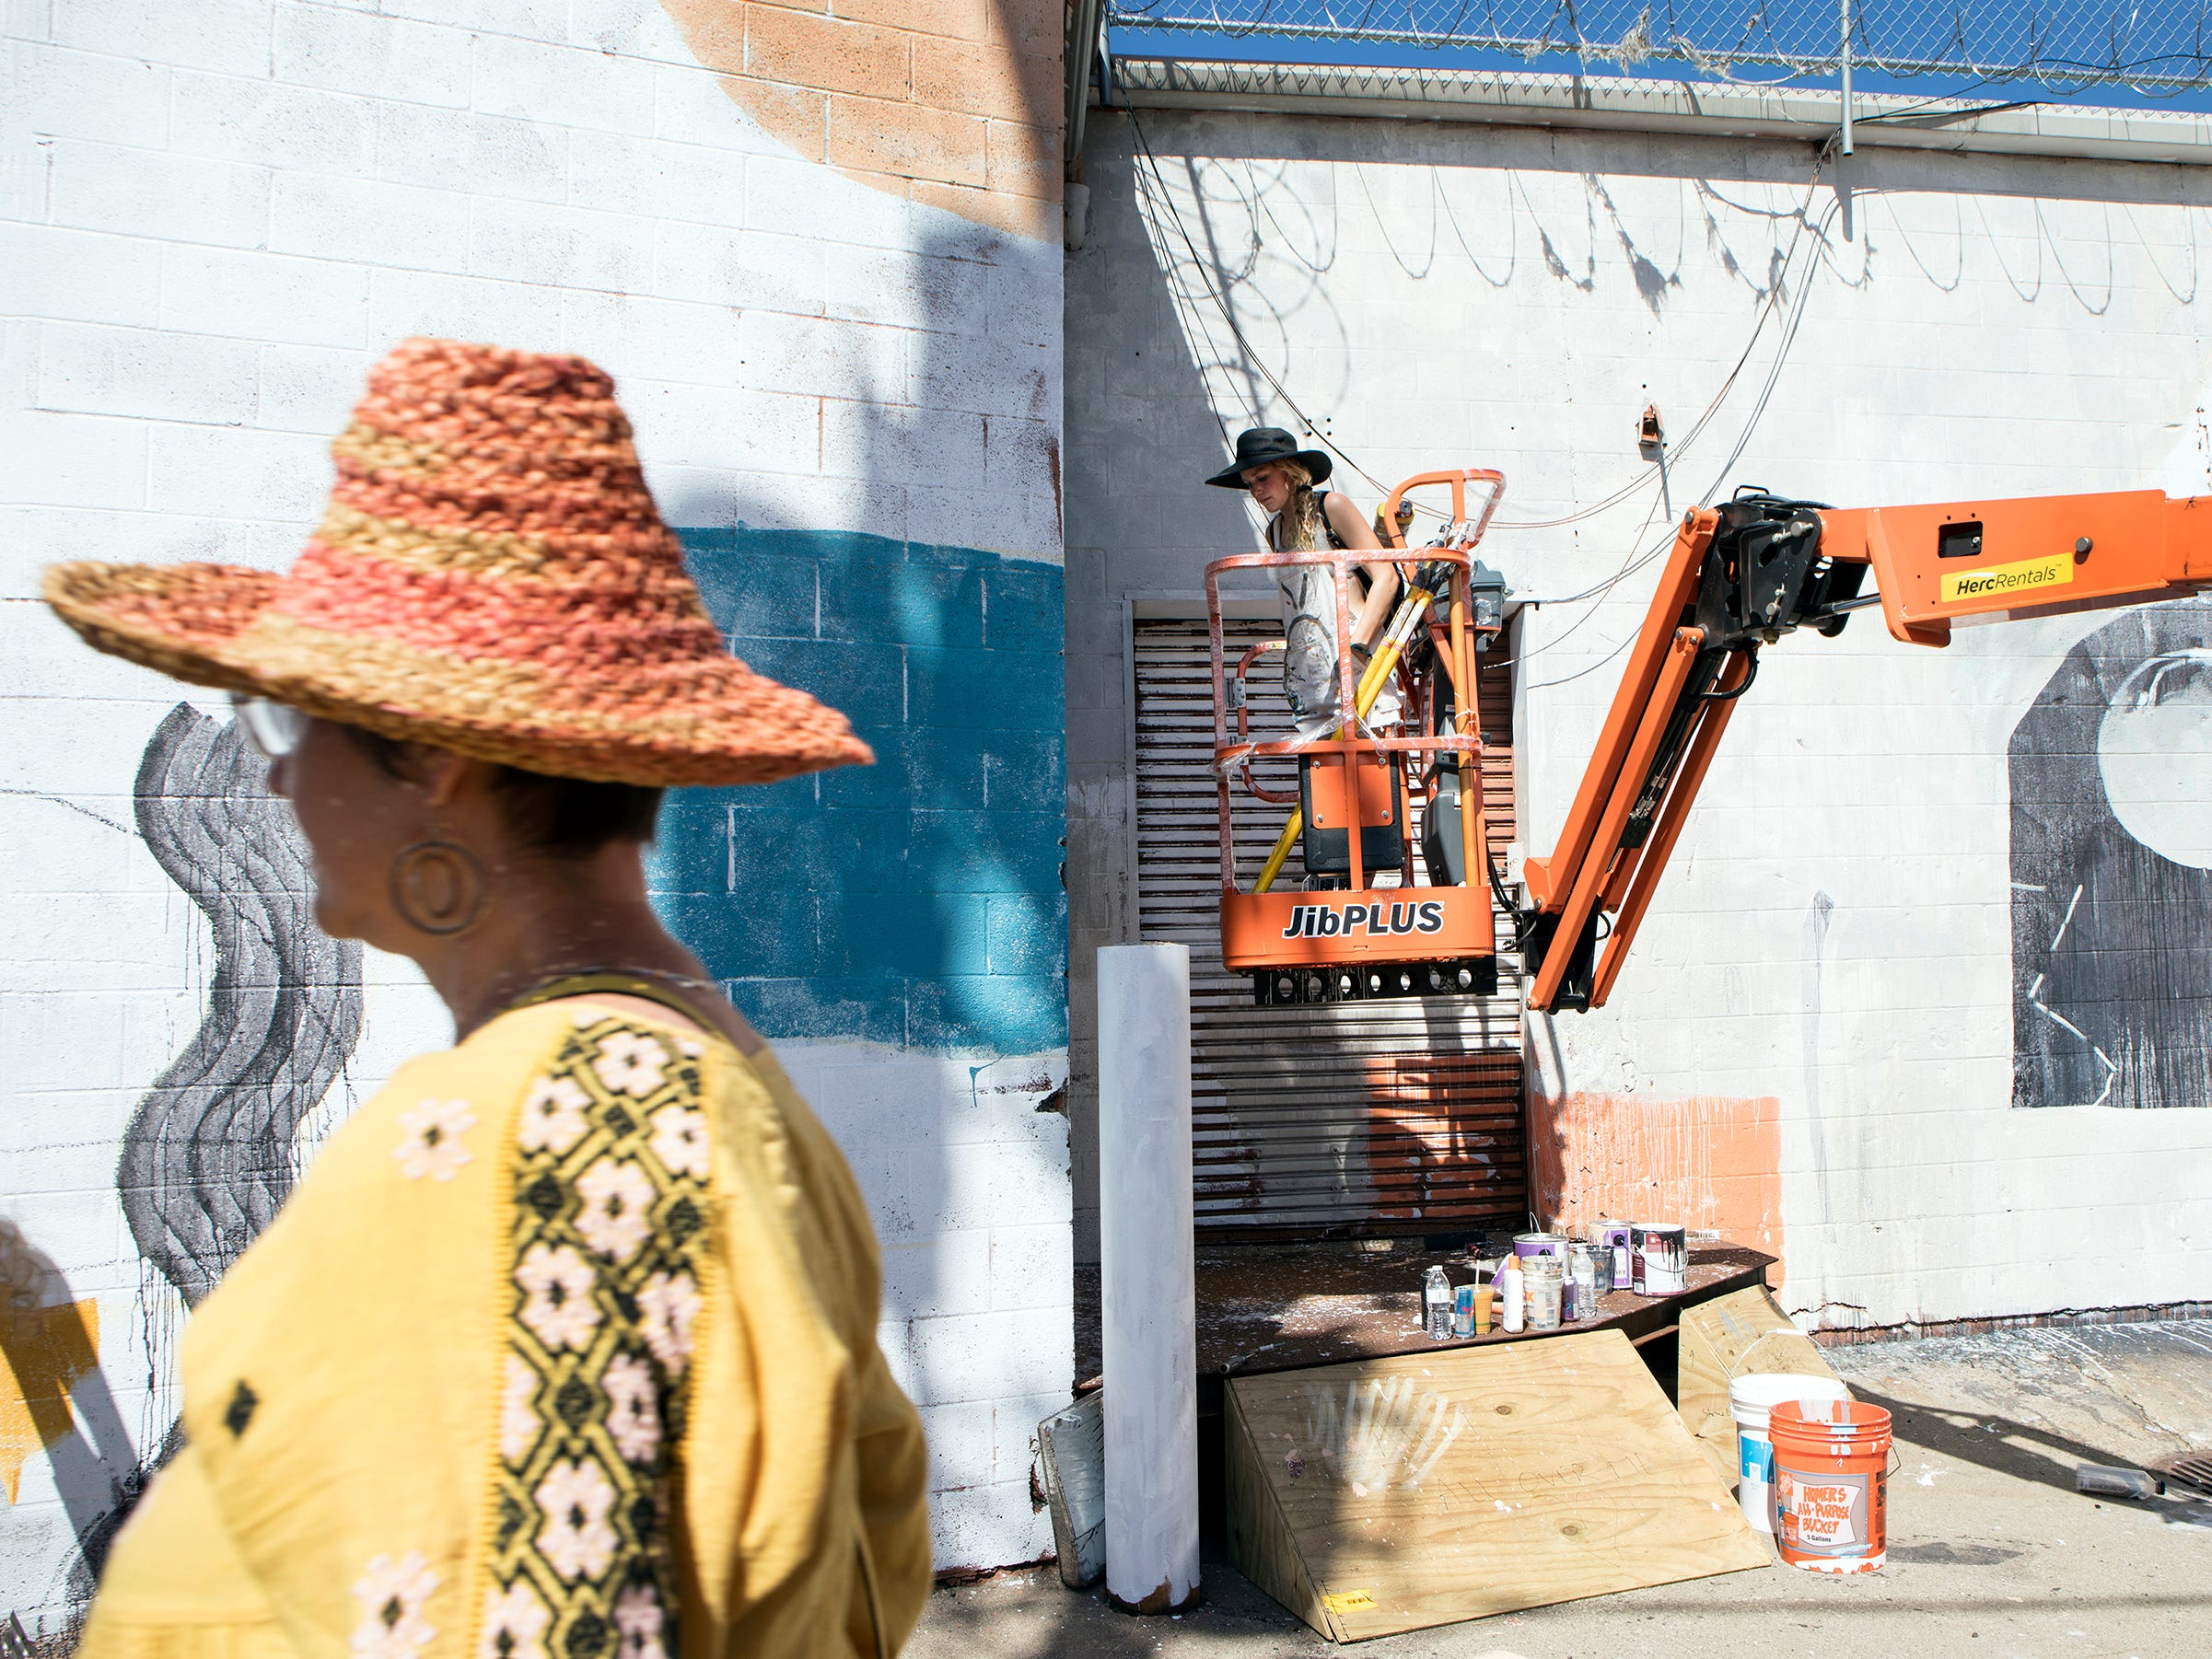 Detroit artist Ellen Rutt works on a mural commissioned by Vans at Murals in the Market in Detroit, Mich., Sunday, September 16, 2018.